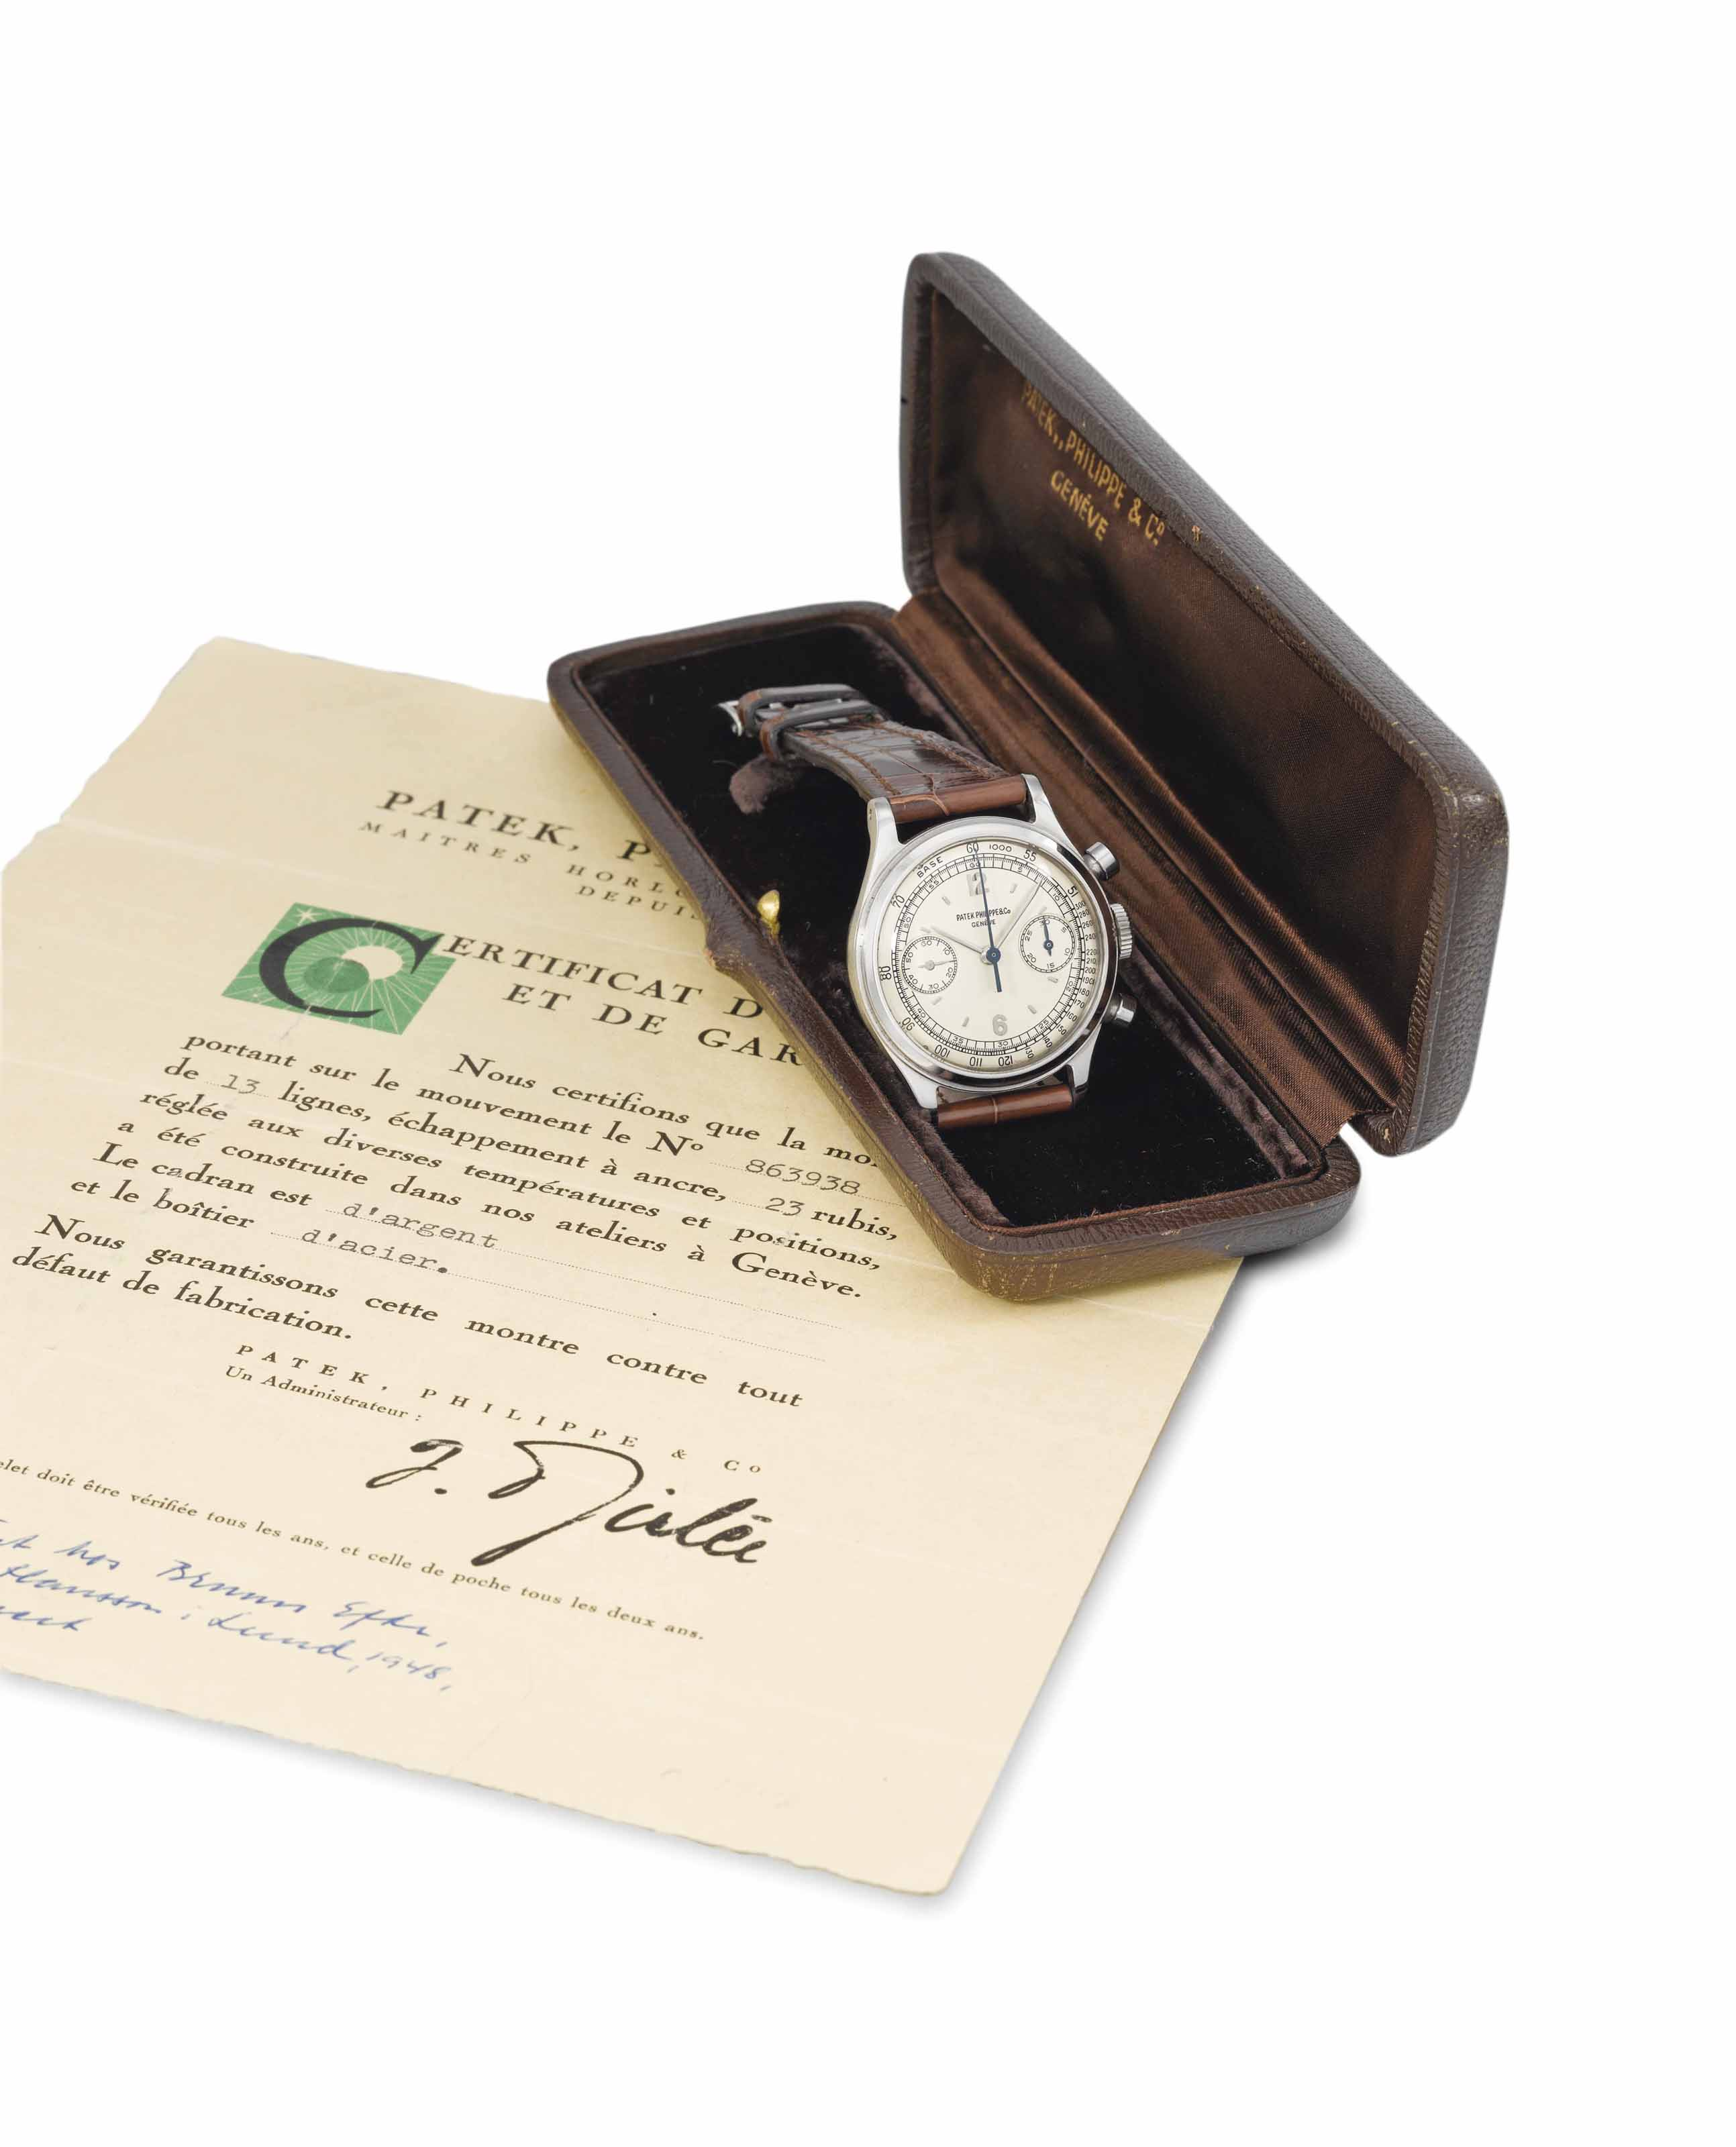 Patek Philippe. An extremely fine, rare and attractive stainless steel chronograph wristwatch with original certificate and box